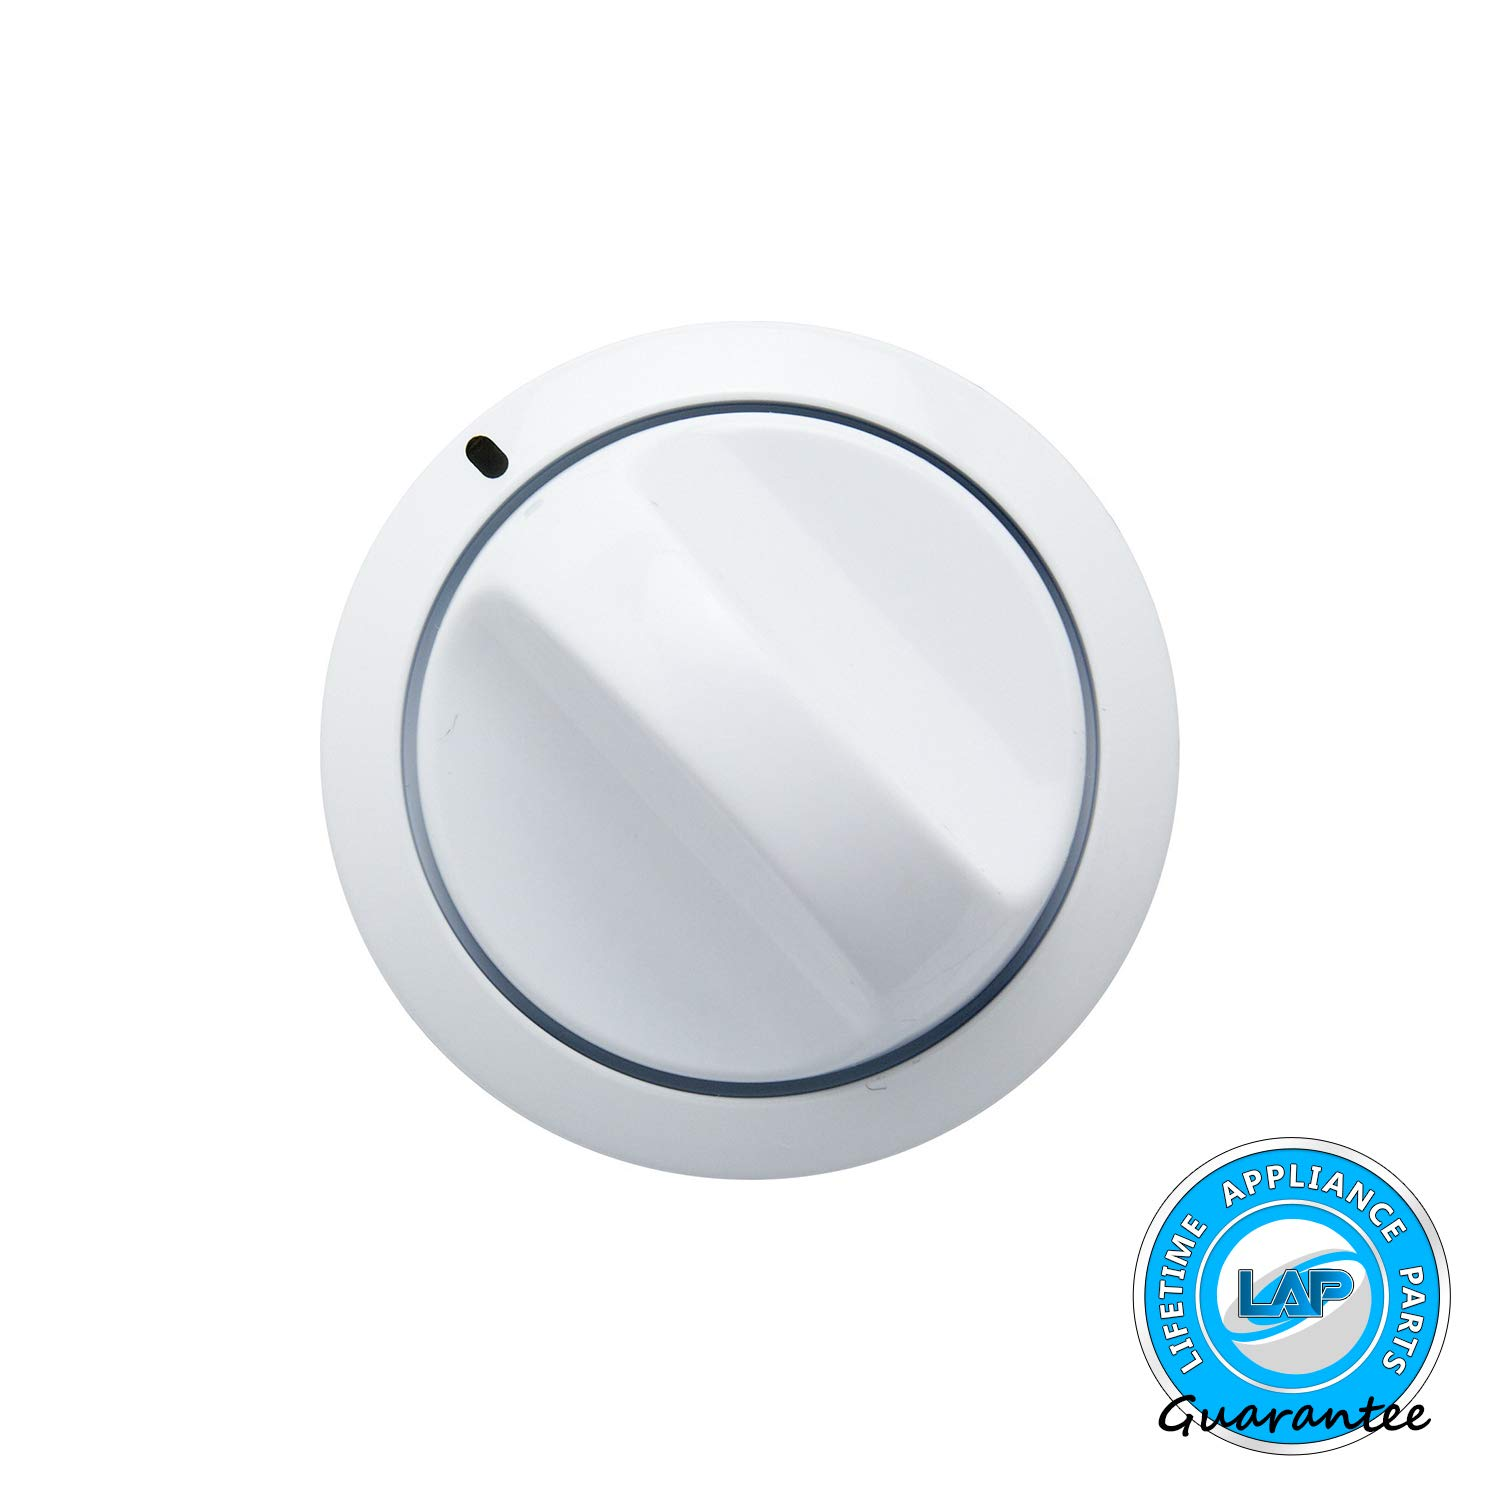 Ultra Durable 131873304 Timer Knob Compatible with Frigidaire Dryer - 1318733, 131167804